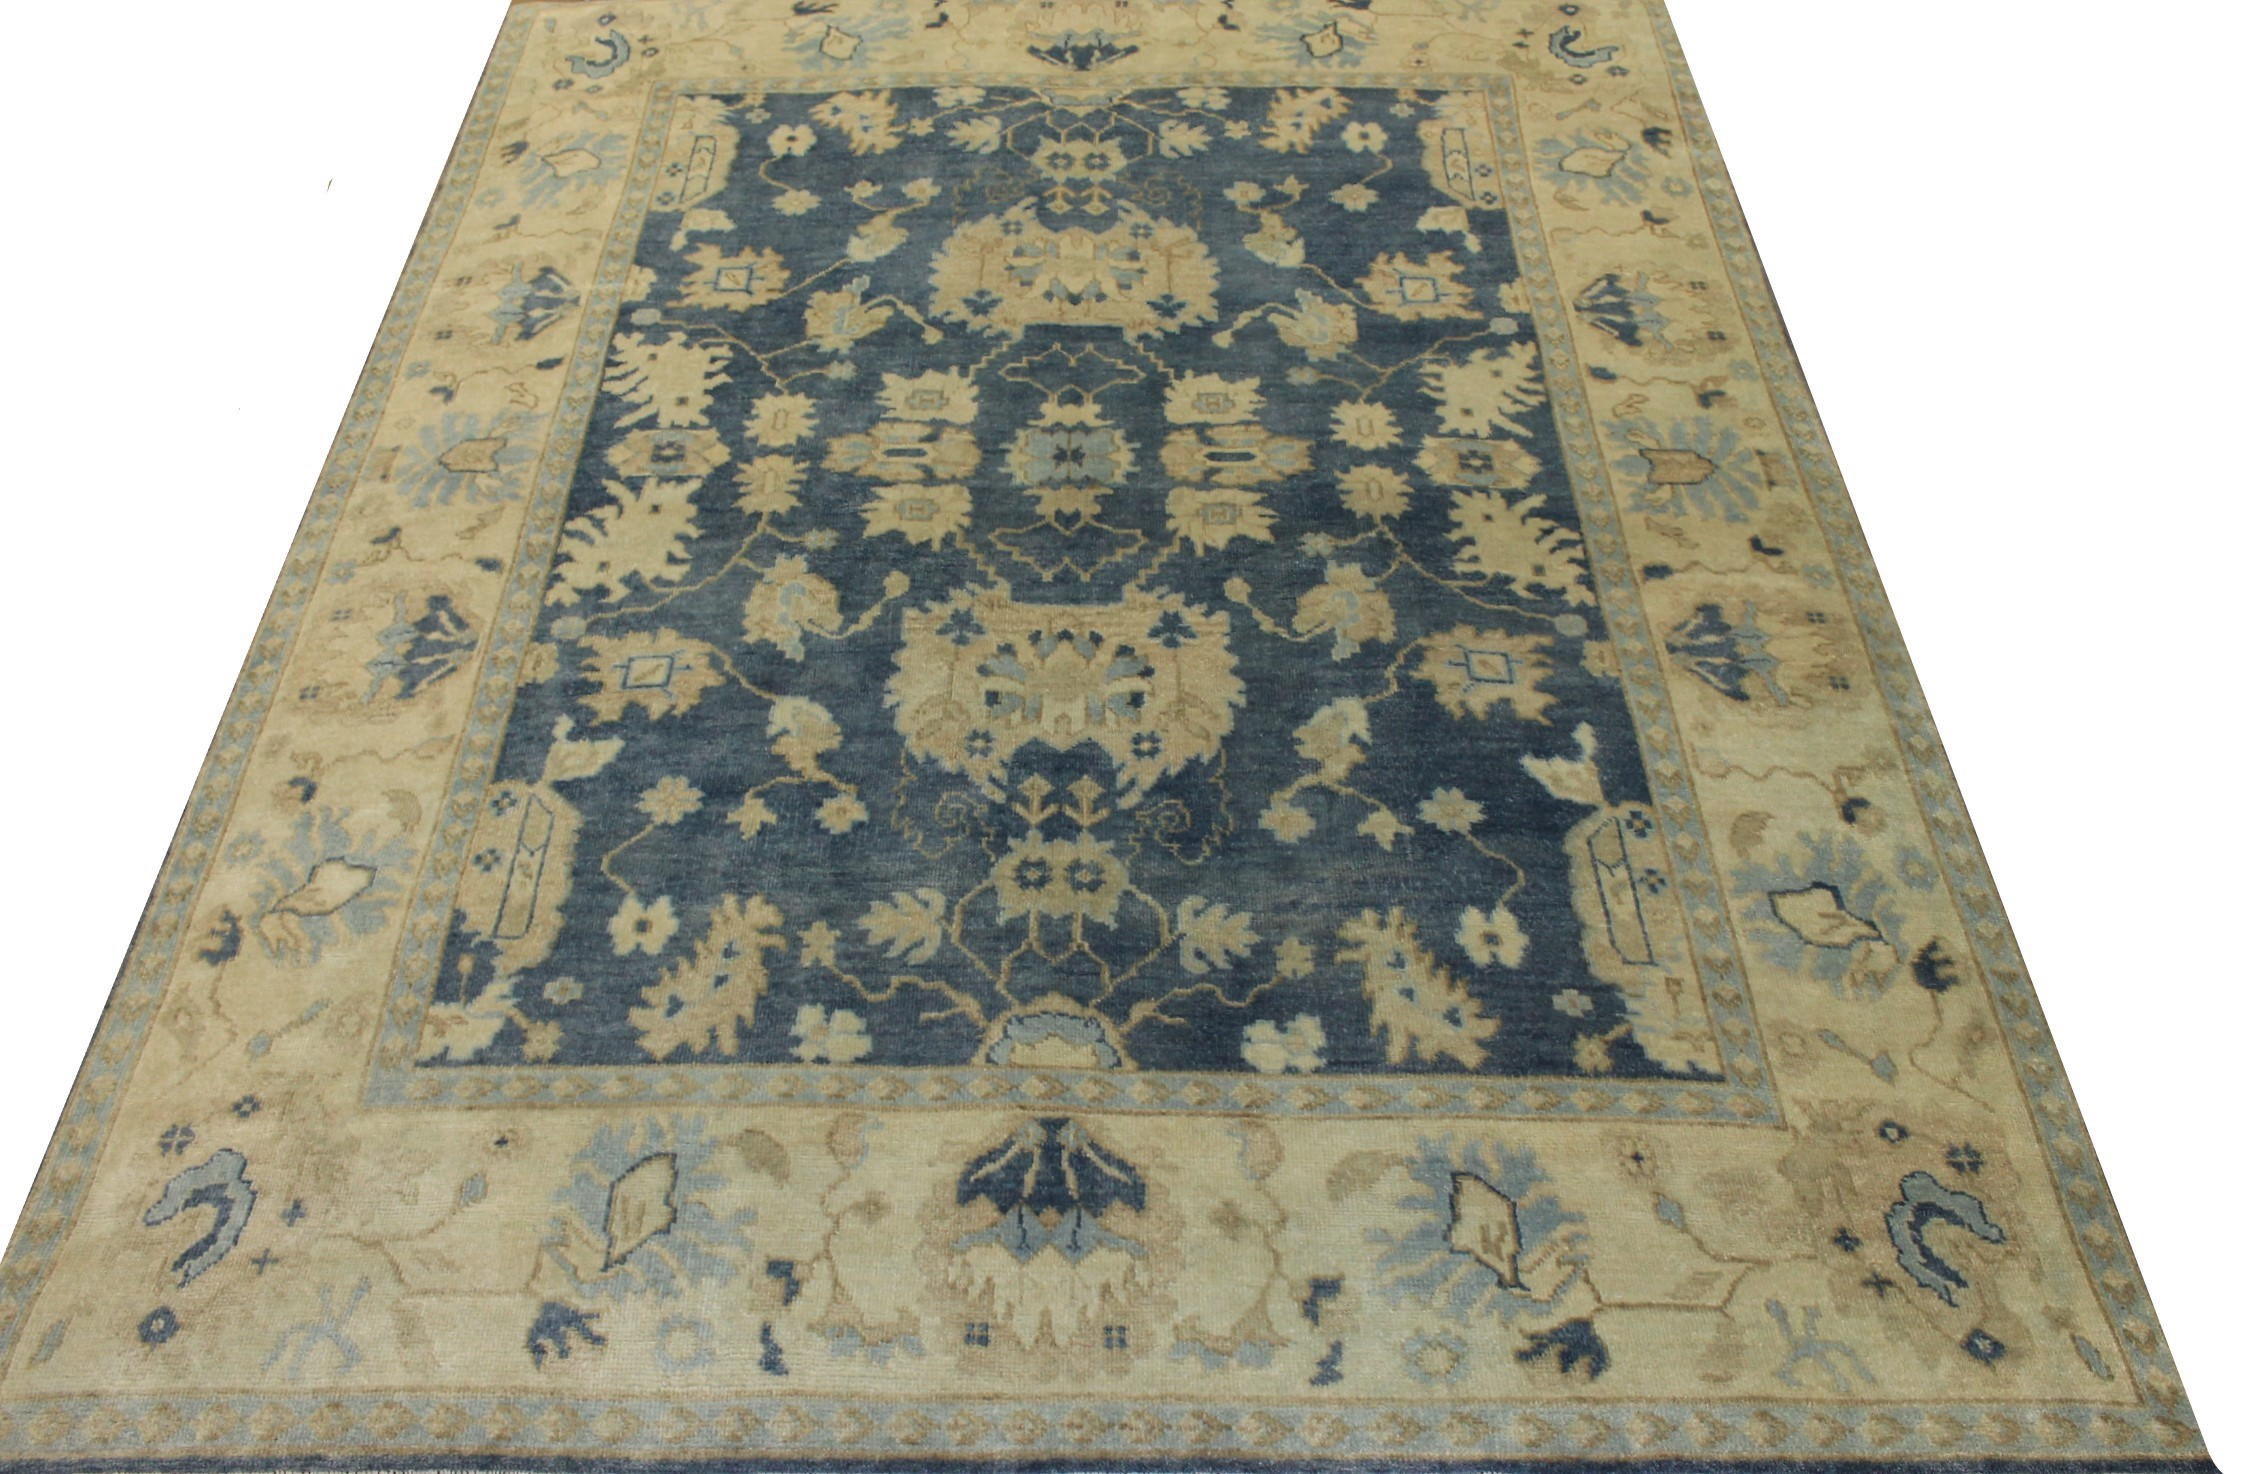 8x10 Oushak Hand Knotted Wool Area Rug - MR17225